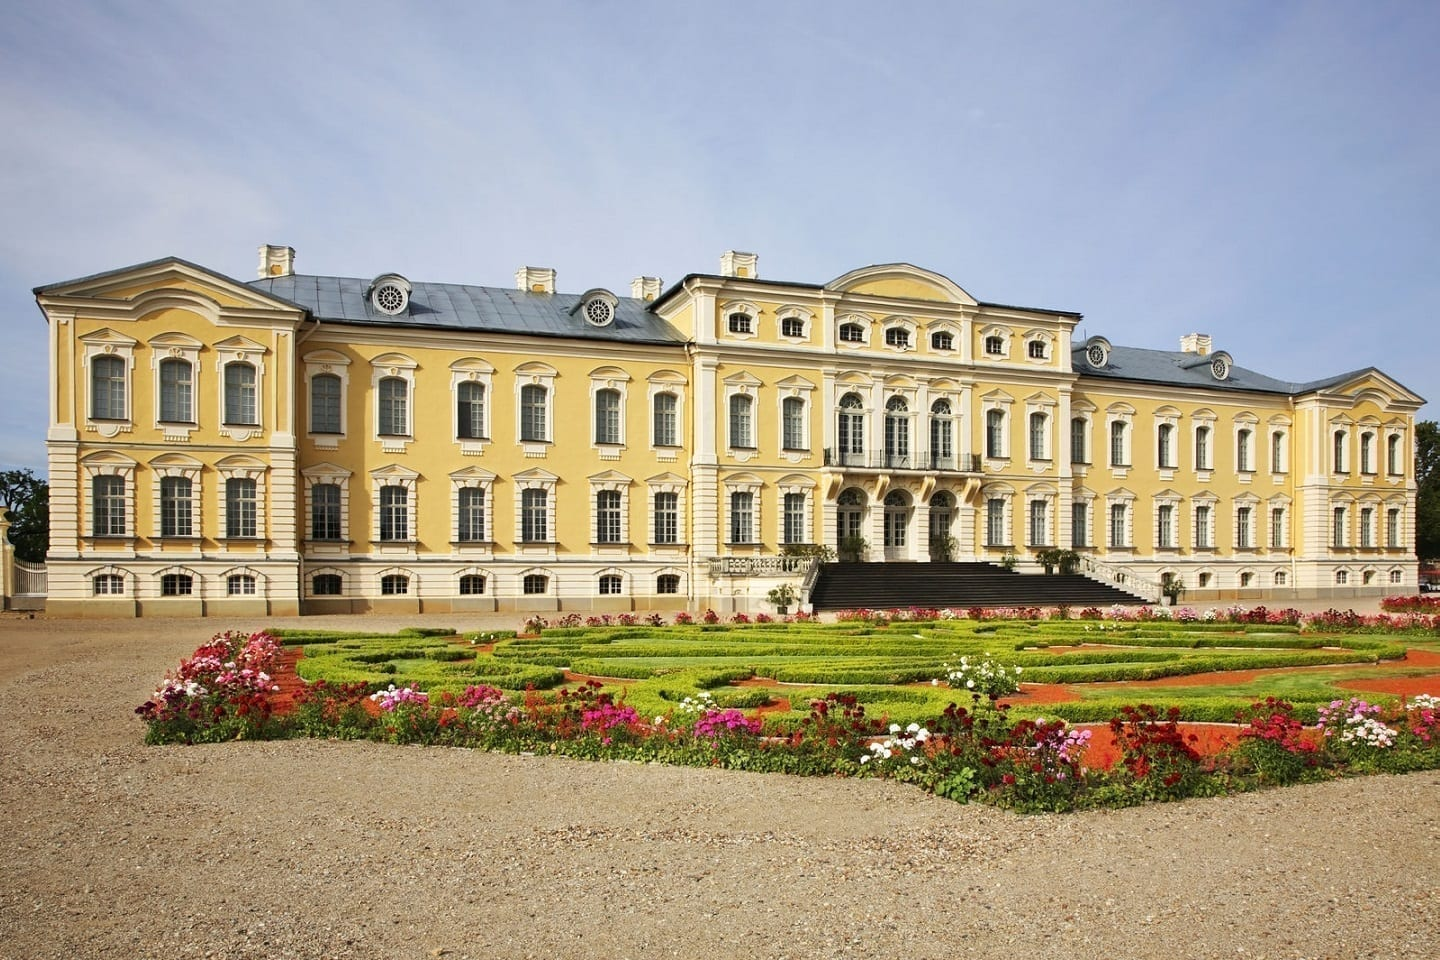 Self Guided Day Trip to Rundale Palace